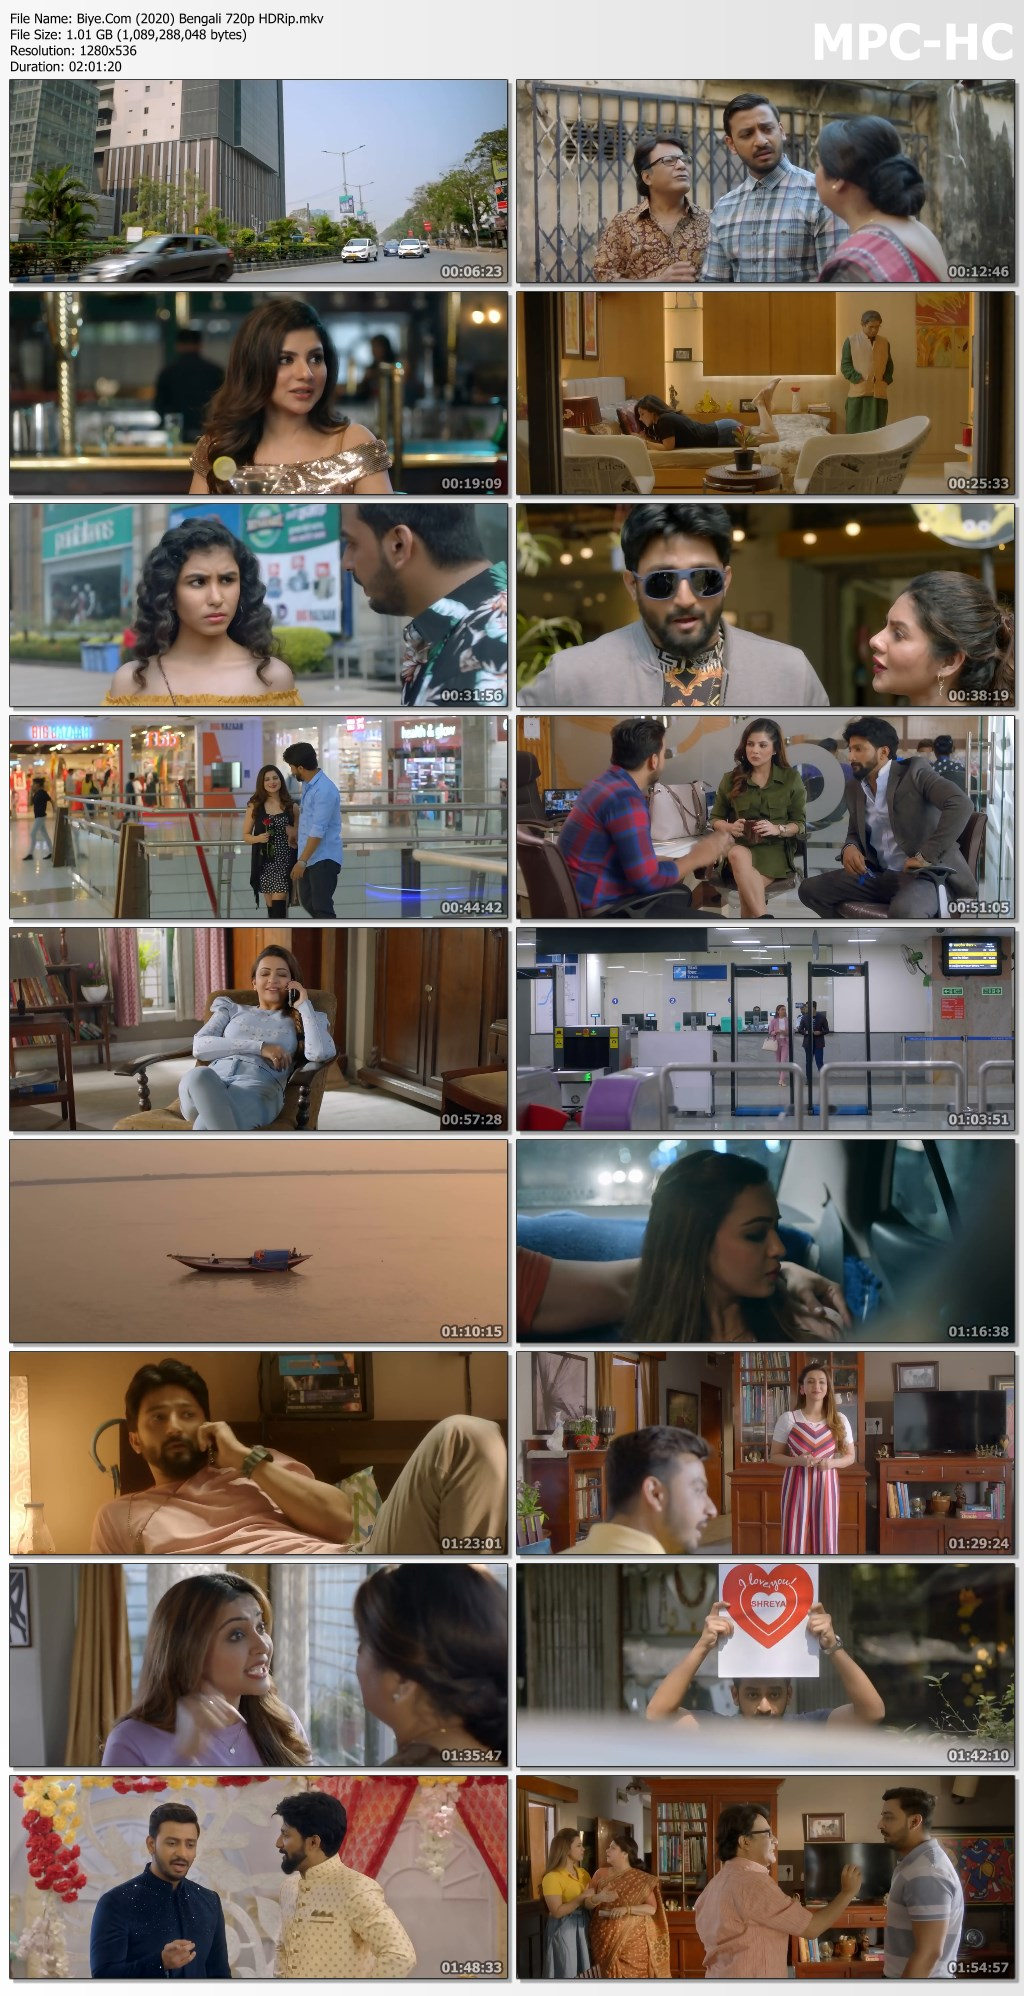 Biye.Com (2020) Bengali 720p HDRip.mkv thumbs